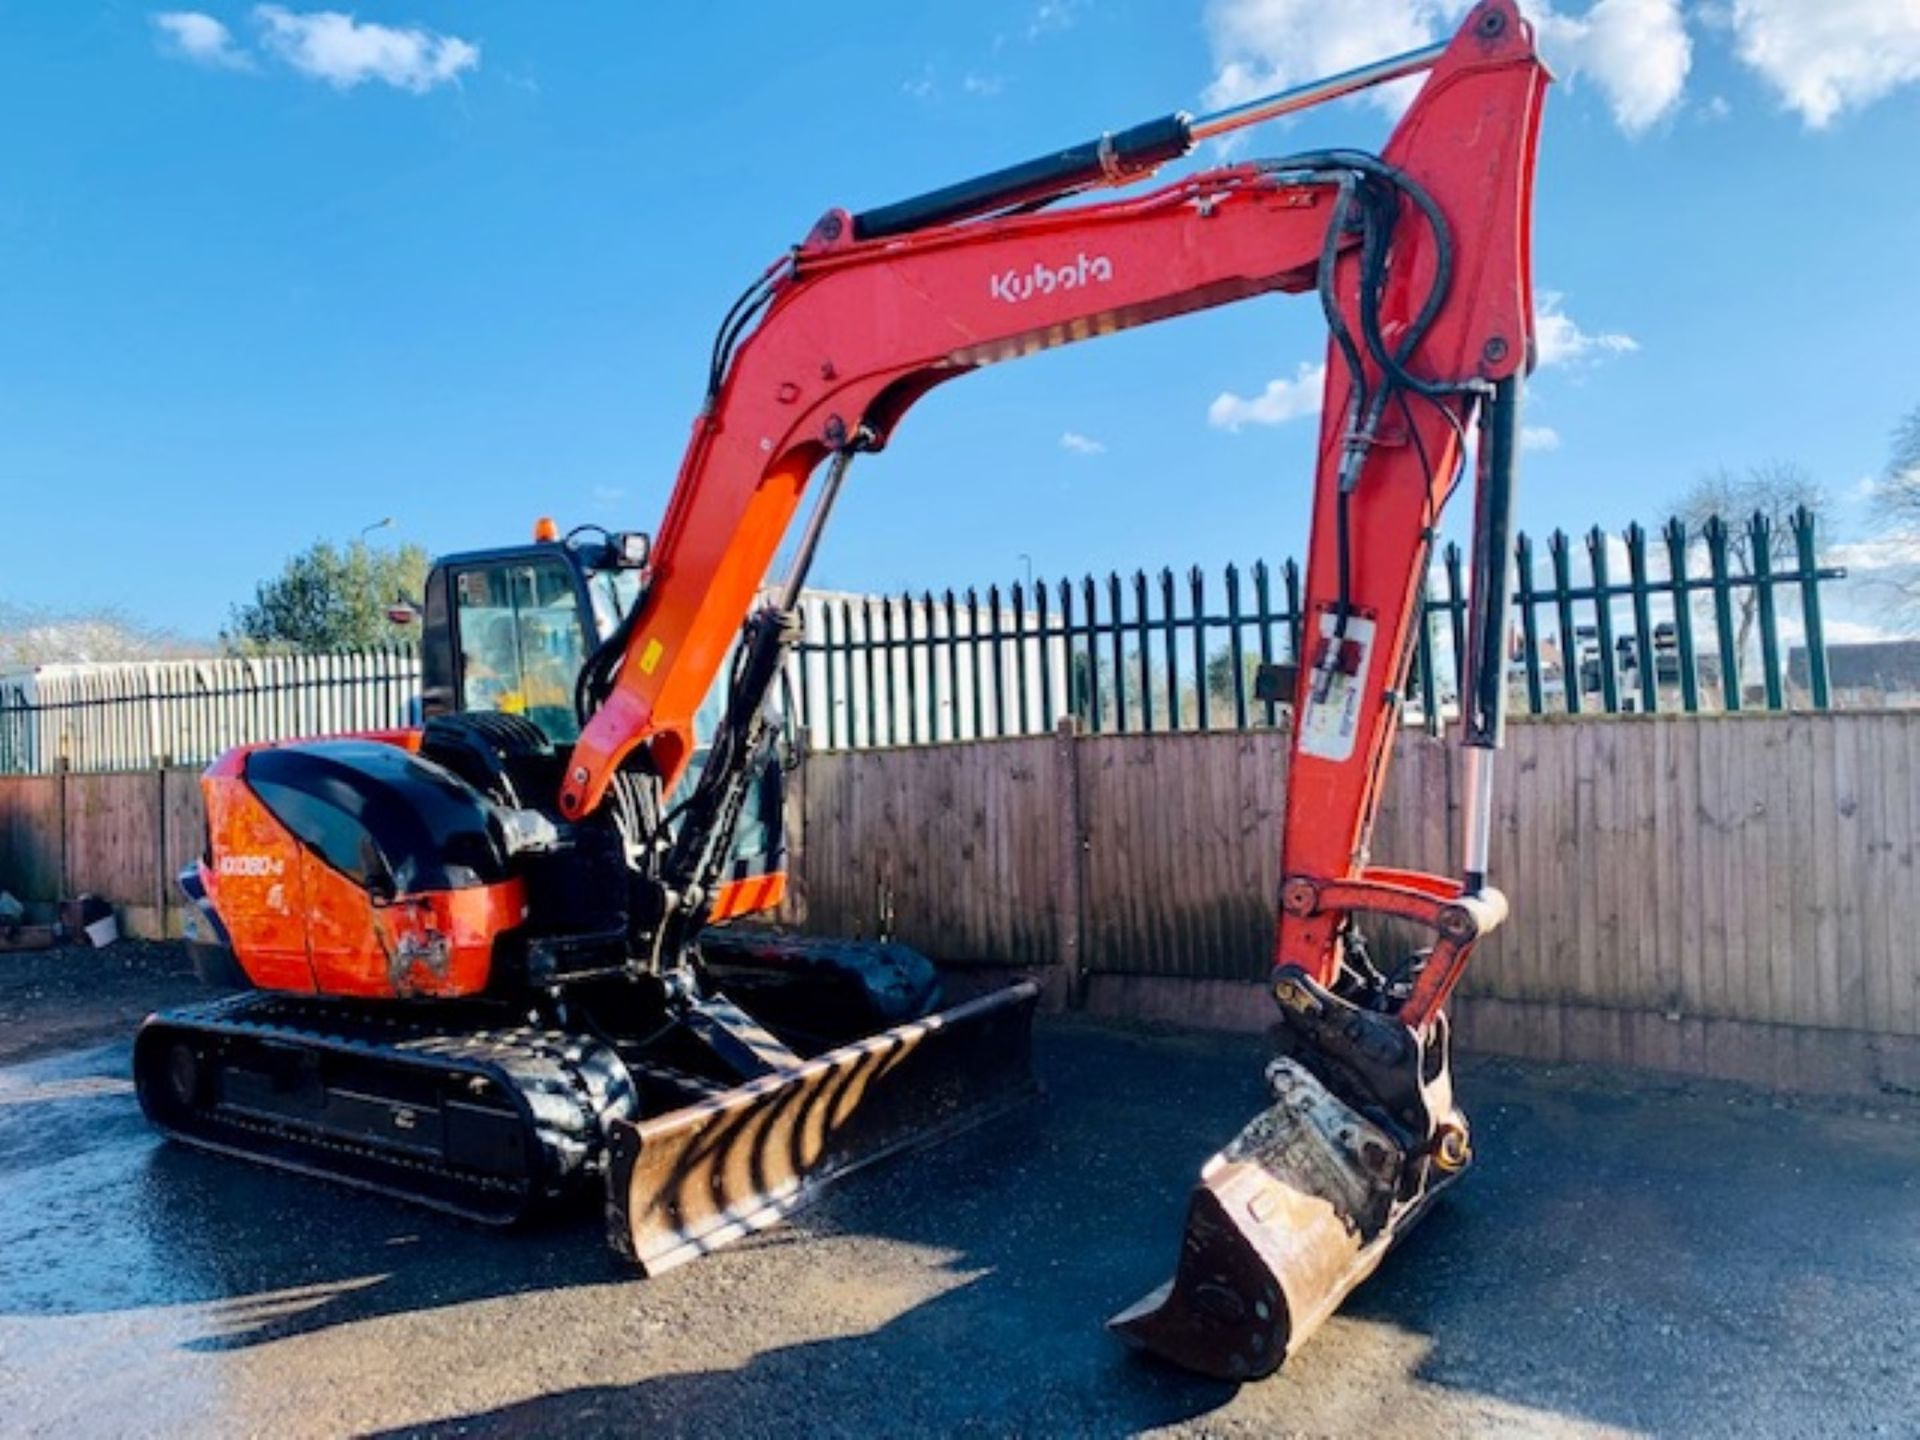 Lot 53 - KUBOTA KX080-4 RUBBER TRACKED CRAWLER DIGGER / EXCAVATOR, YEAR 2015, 4447 HOURS, AIR CON *PLUS VAT*